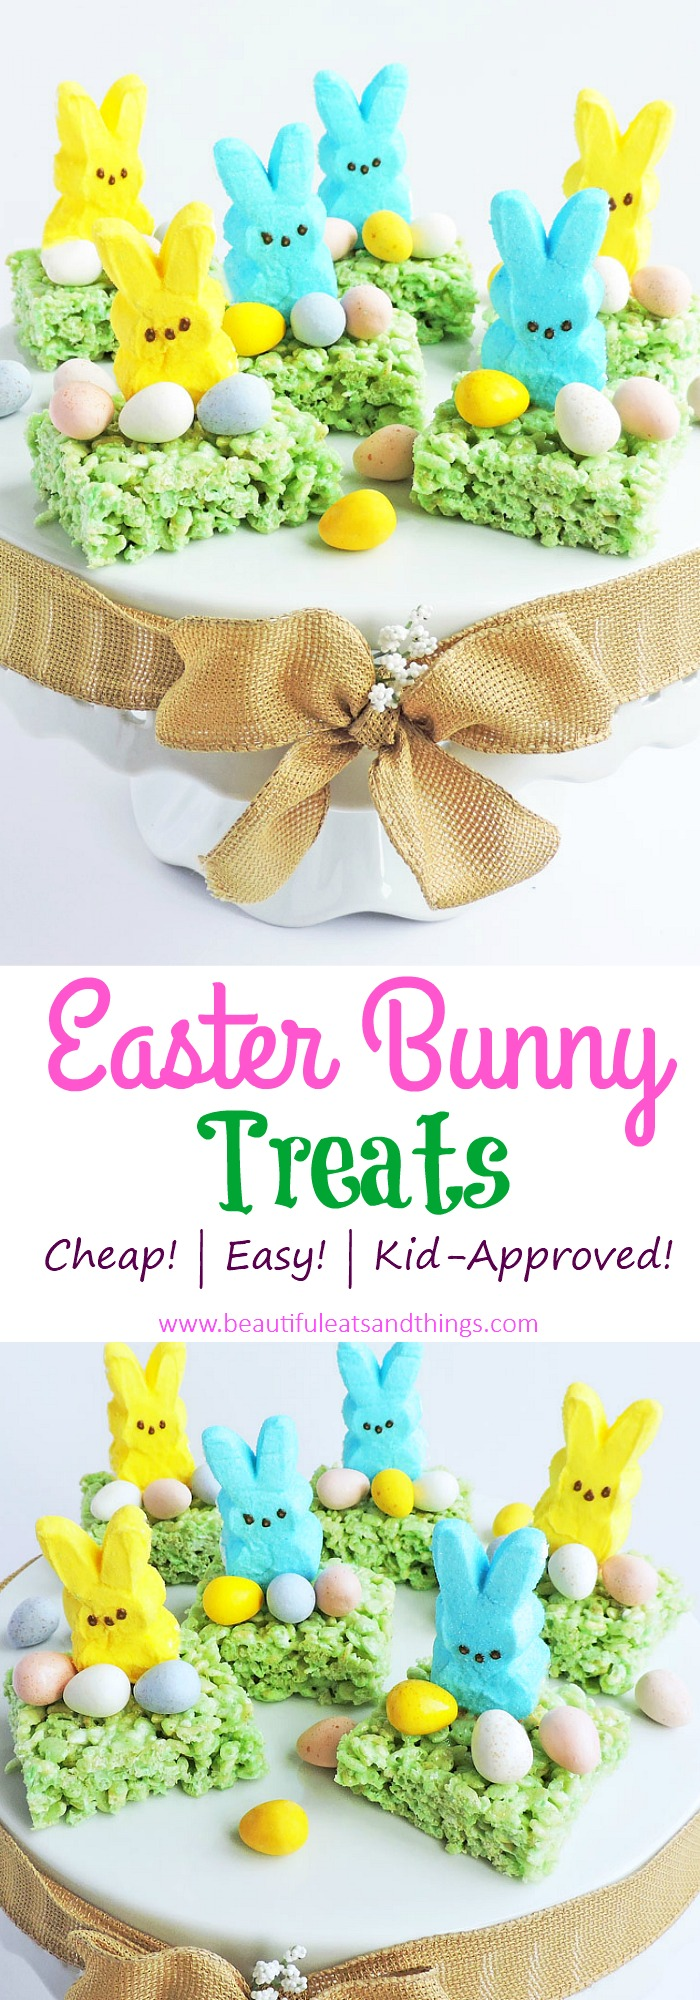 Easy Easter Bunny Treats-Cute Ideas for Easter Treats